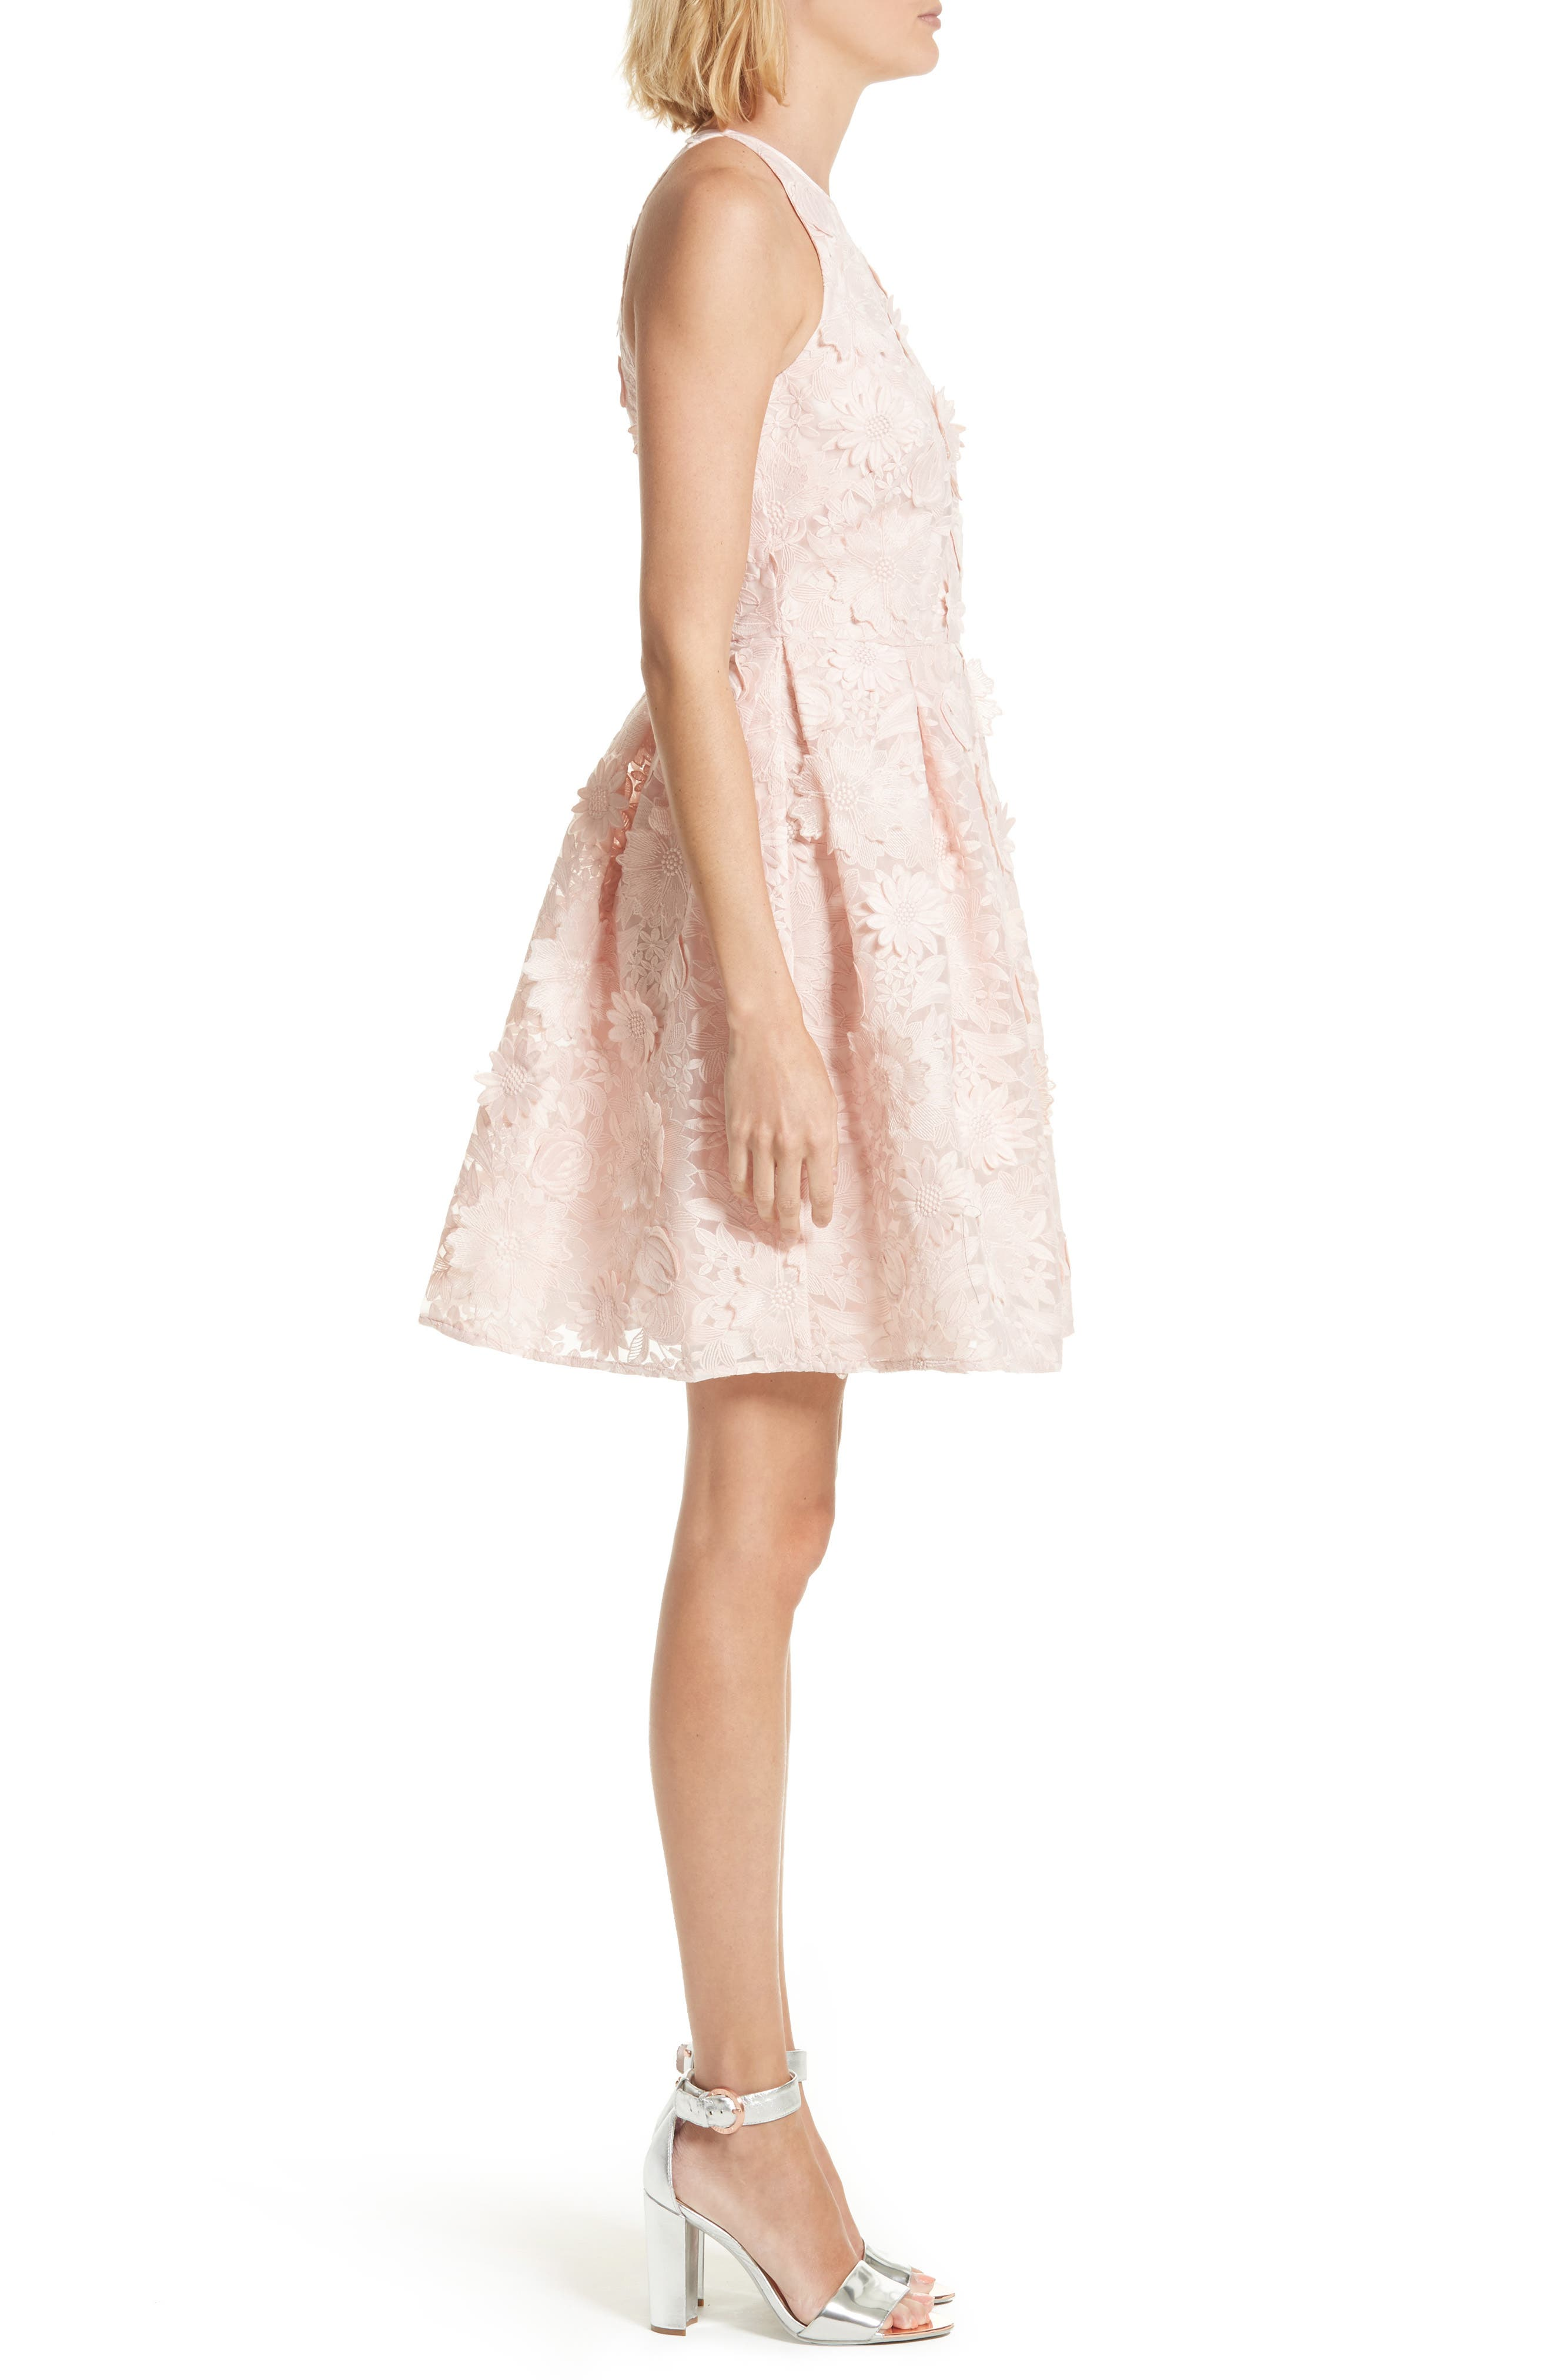 Sweetee Lace Skater Dress,                             Alternate thumbnail 3, color,                             Baby Pink